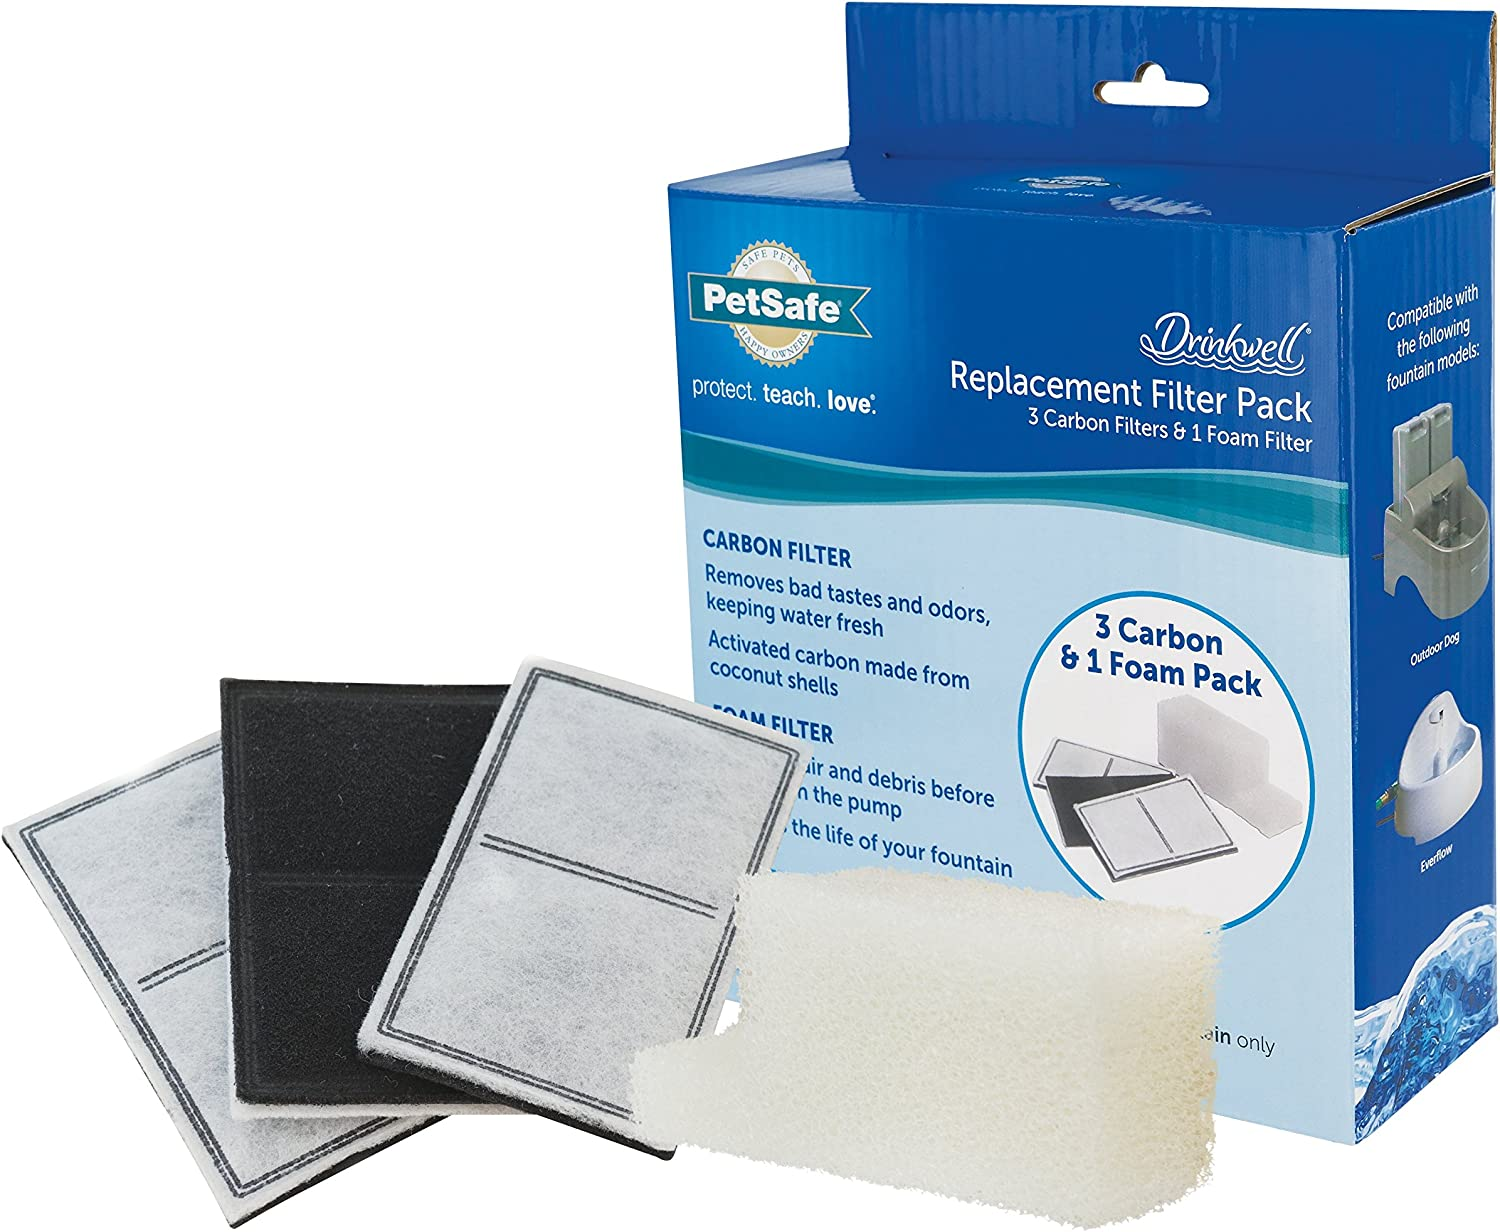 PetSafe Drinkwell Replacement Filter Kit Selling rankings and for Ou the Everflow Inexpensive